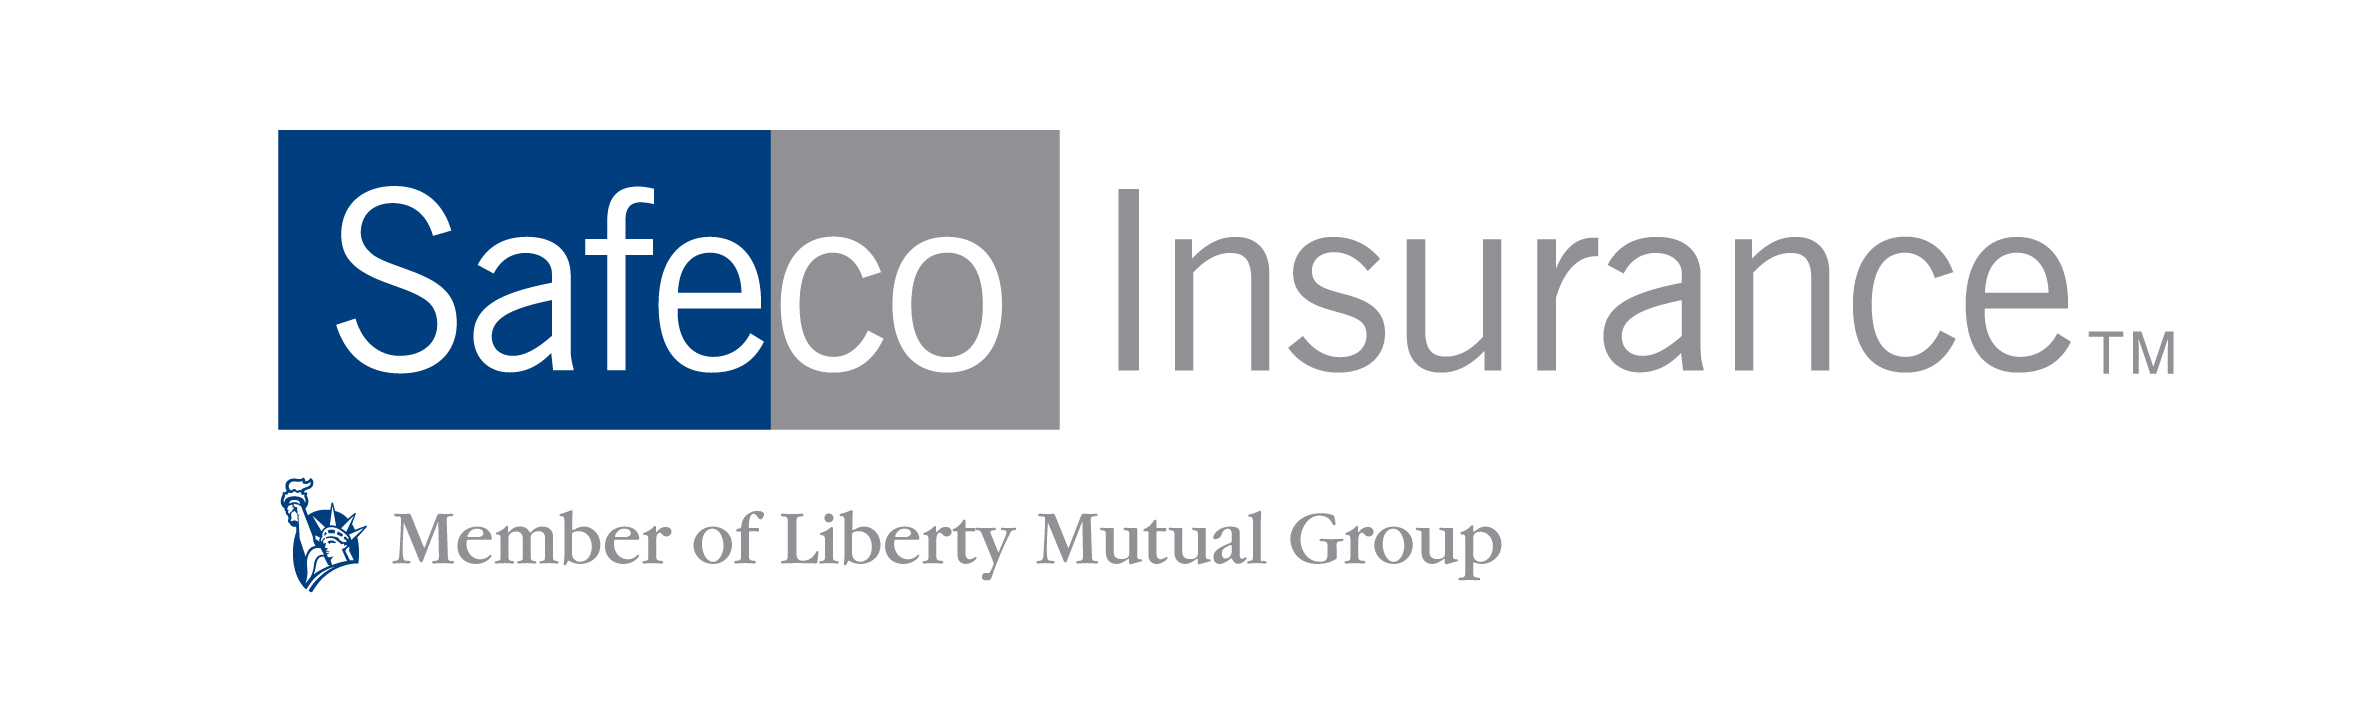 Our Partners Images and Links - Goodness Insurance